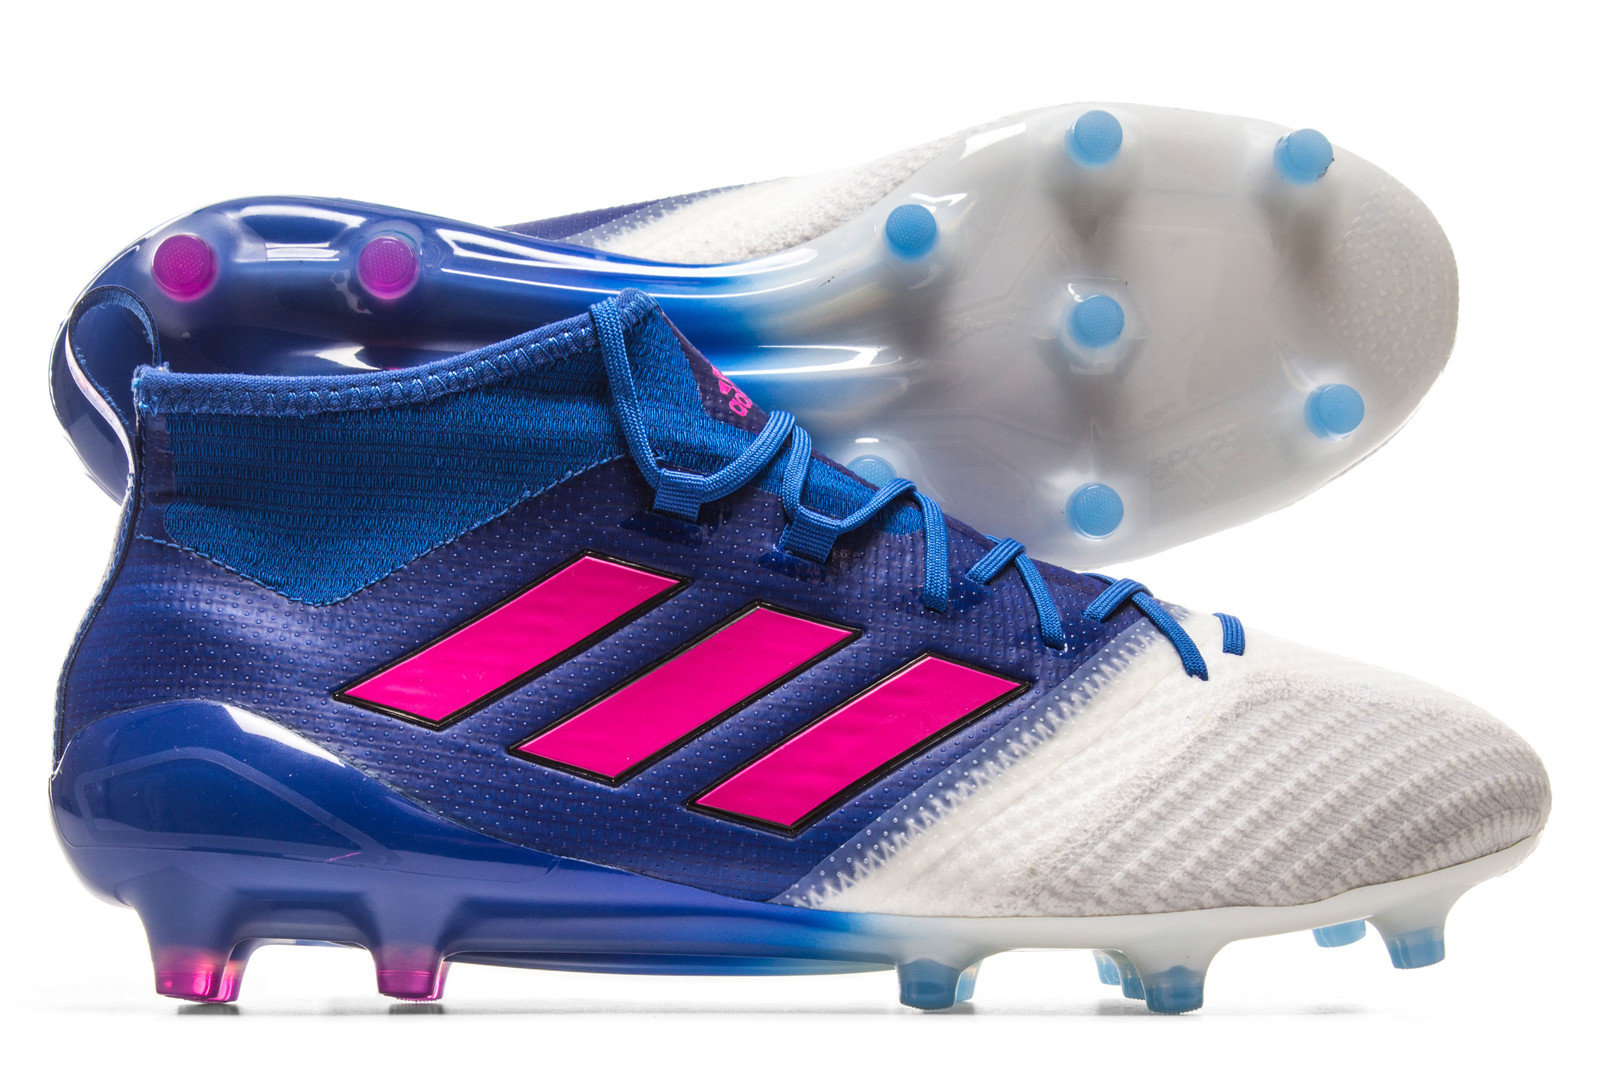 Image of Ace 17.1 Primeknit FG Football Boots